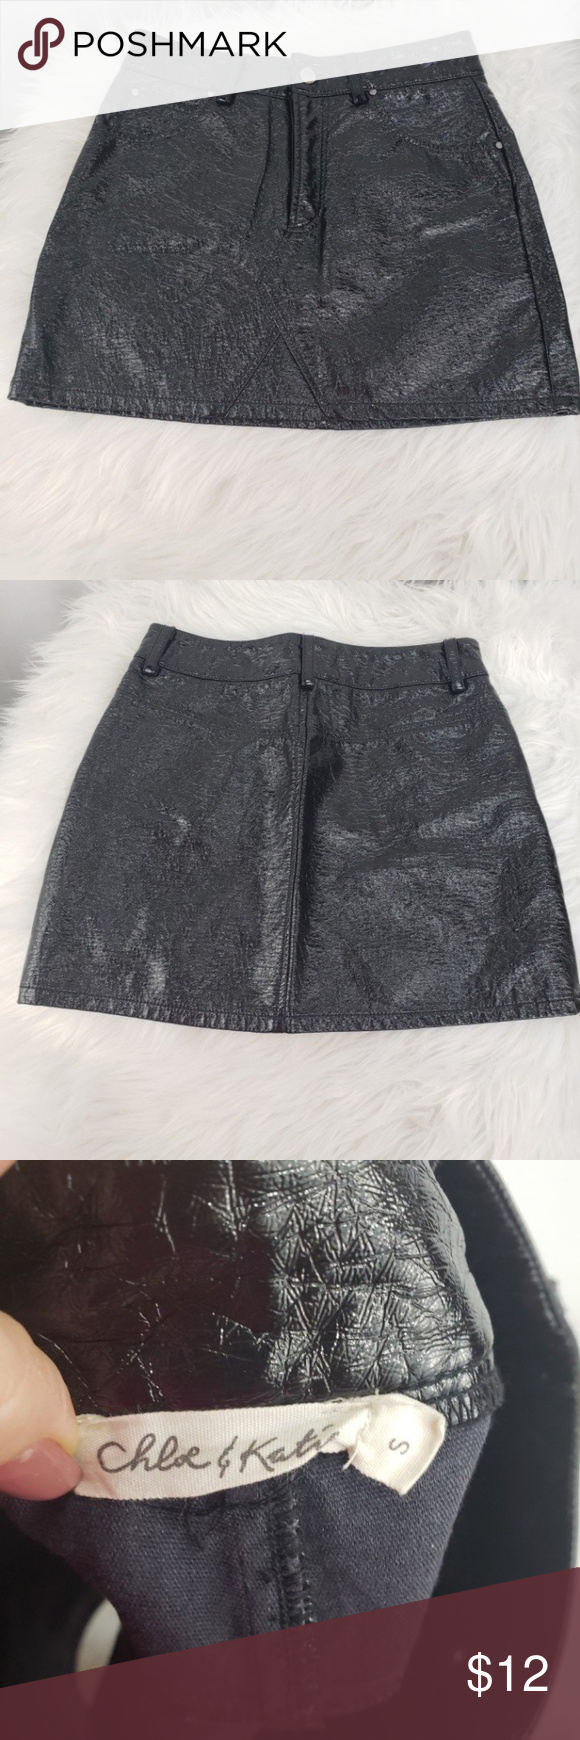 ef483f6c Chloe & Katie Black Faux Leather Skirt Preloved like new Size Small ...